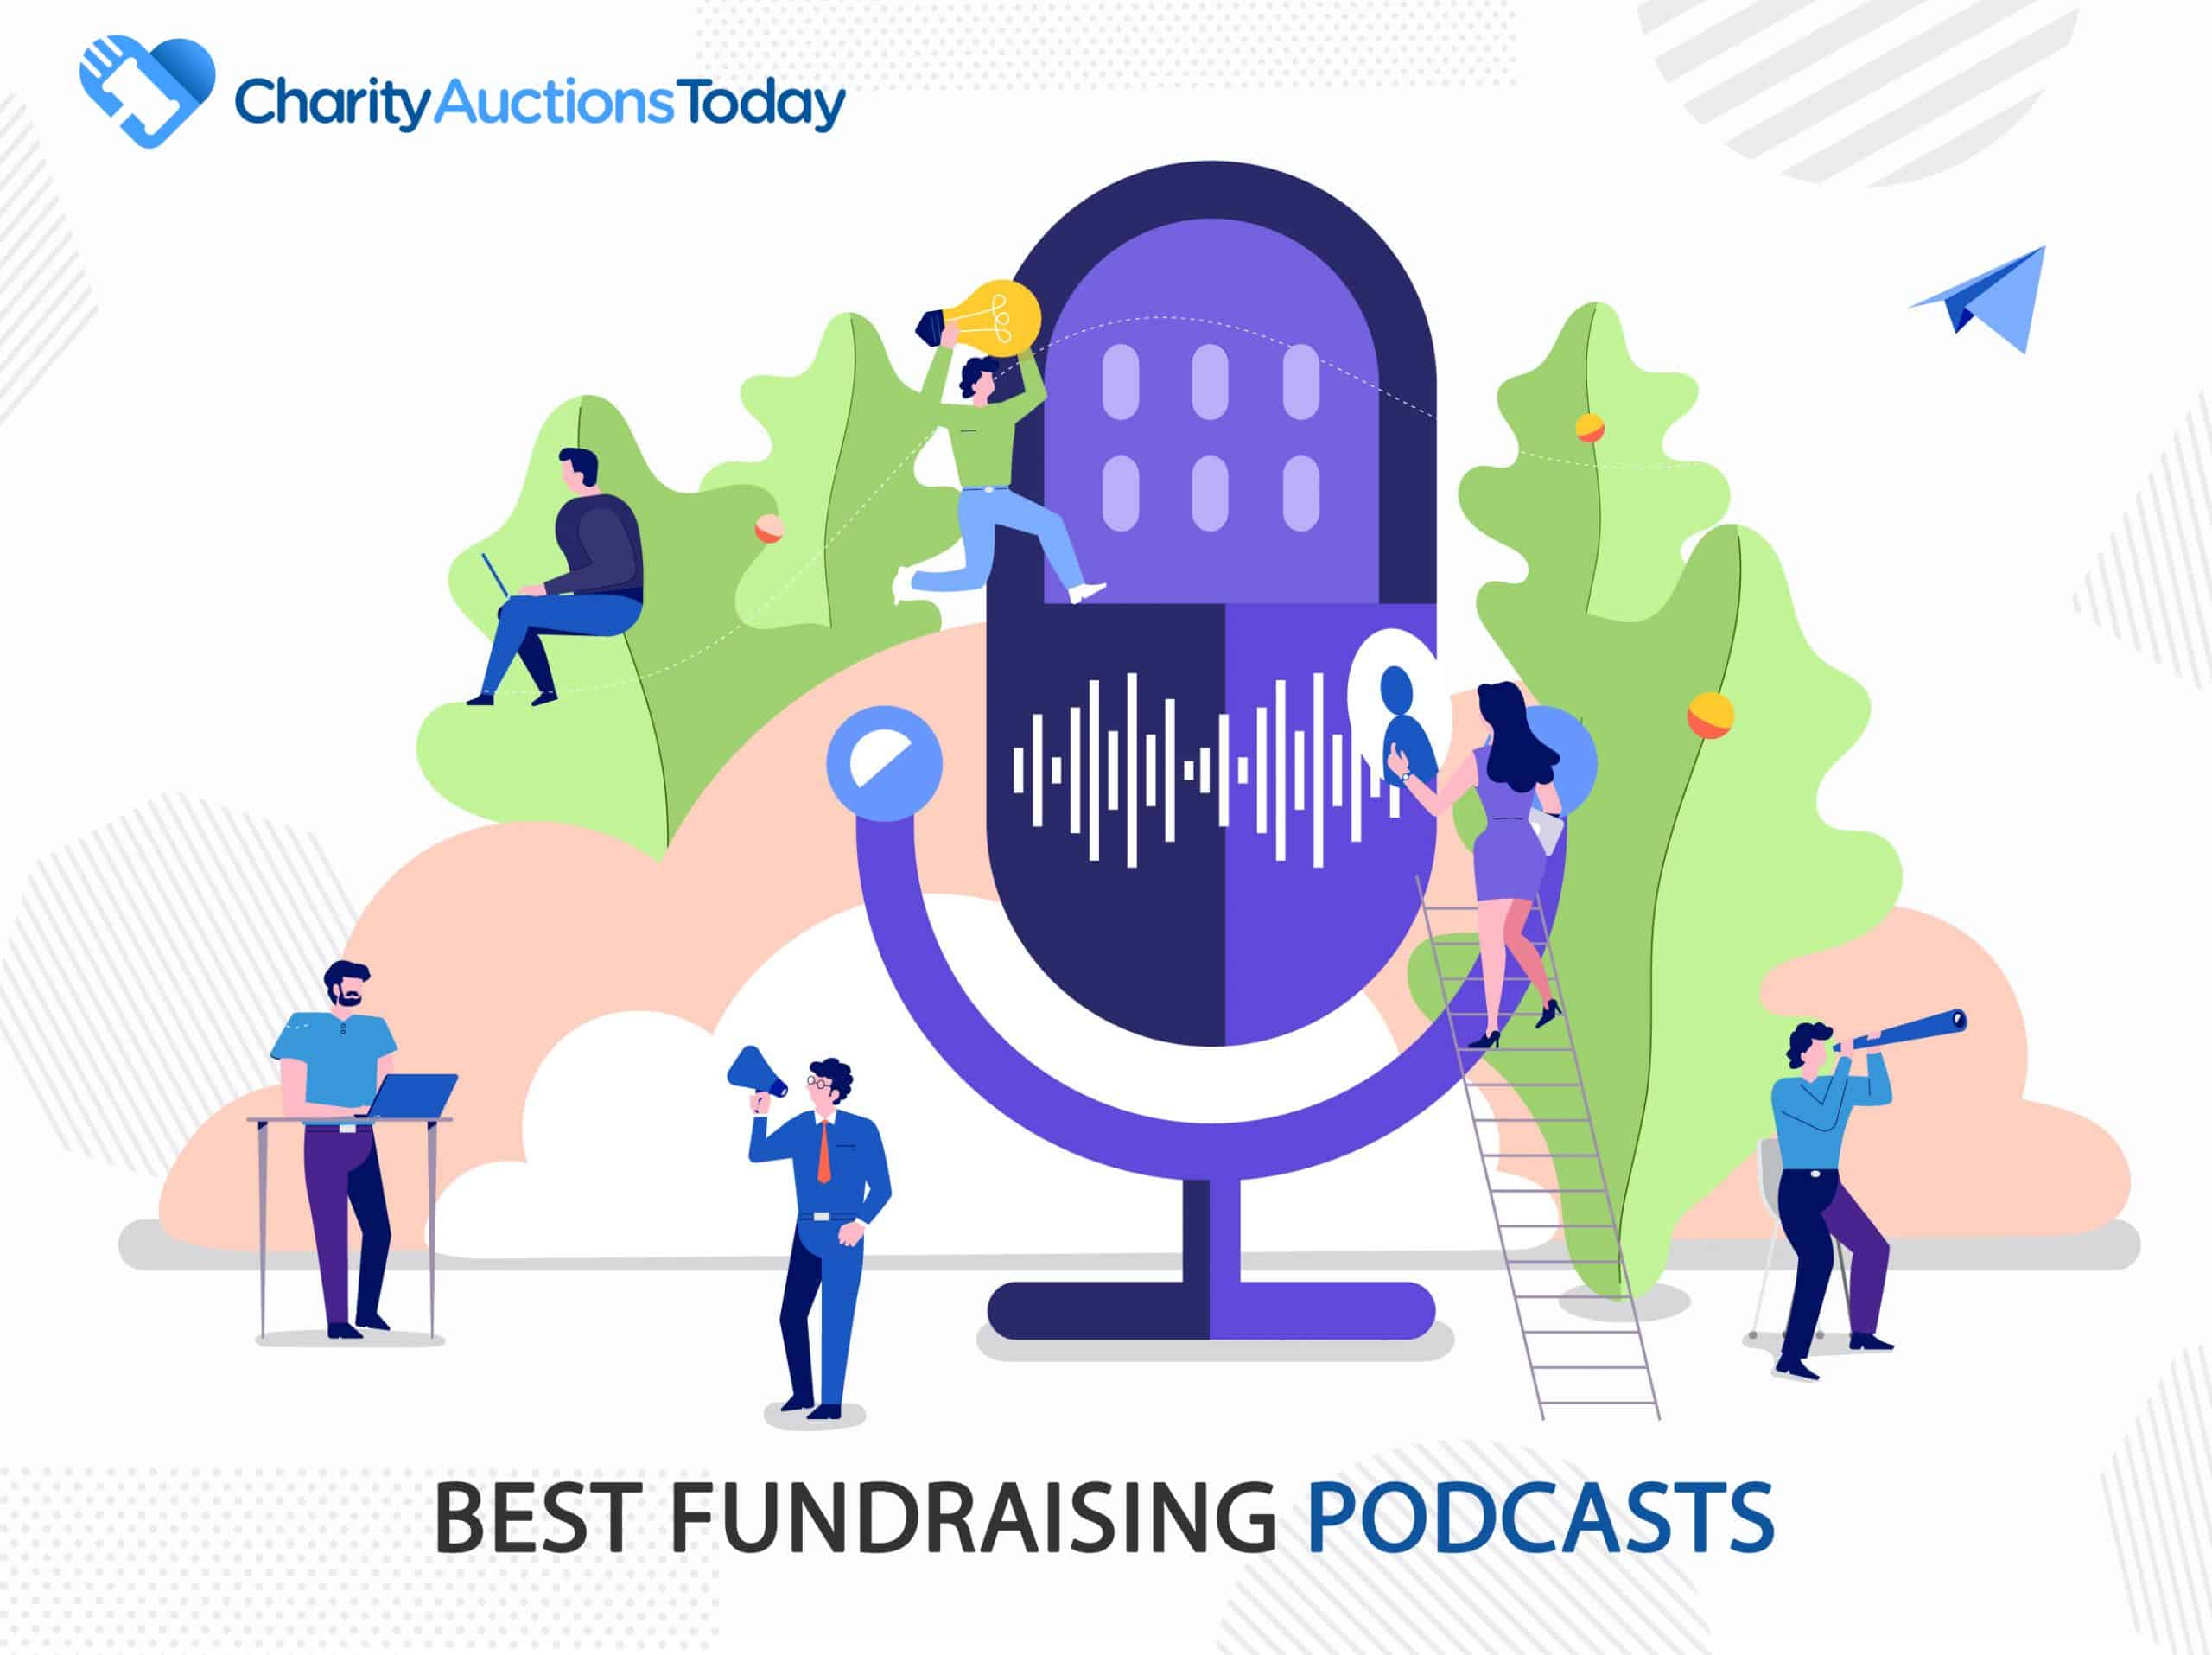 fundraising-ideas-best-podcasts-to-raise-funds